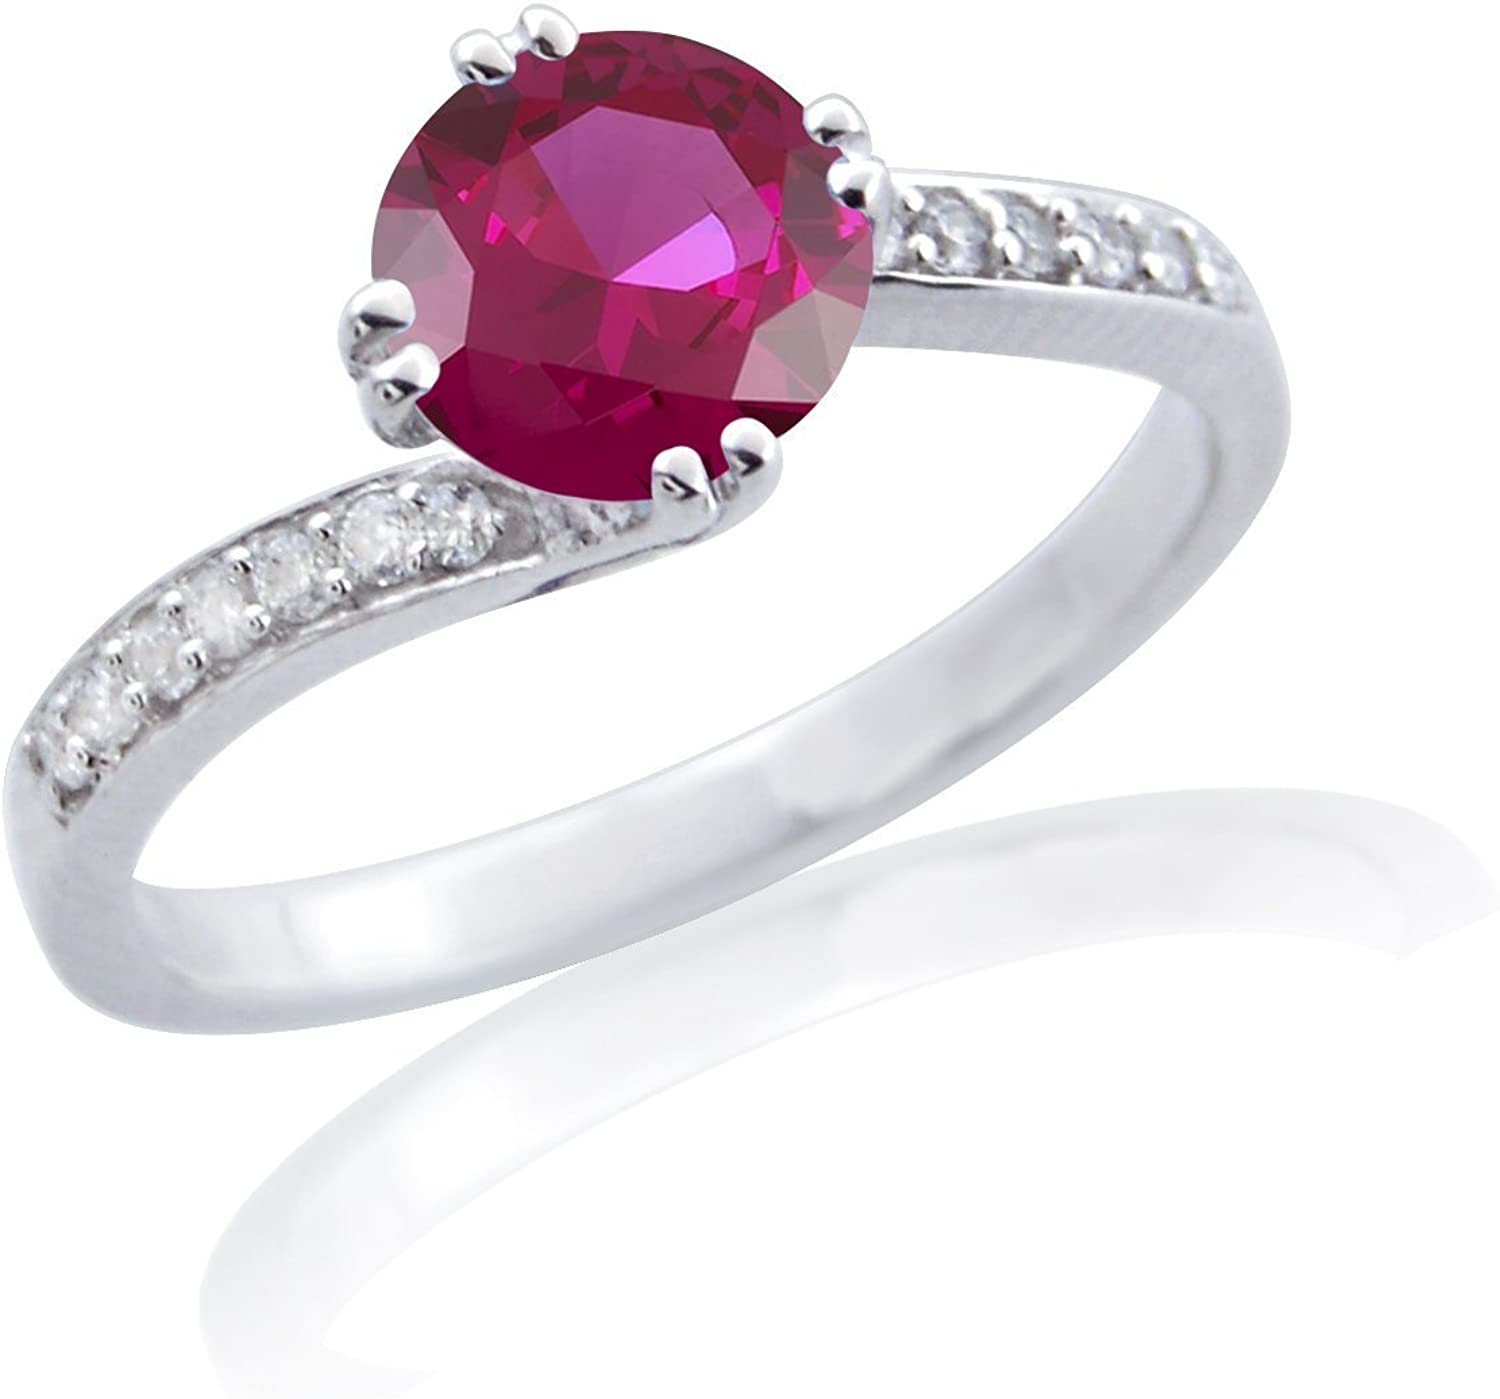 SILVER SEA EMPIRE 1.35 New Ranking TOP3 Shipping Free Ct Ruby VVS1 .925 Si Sterling D Diamond